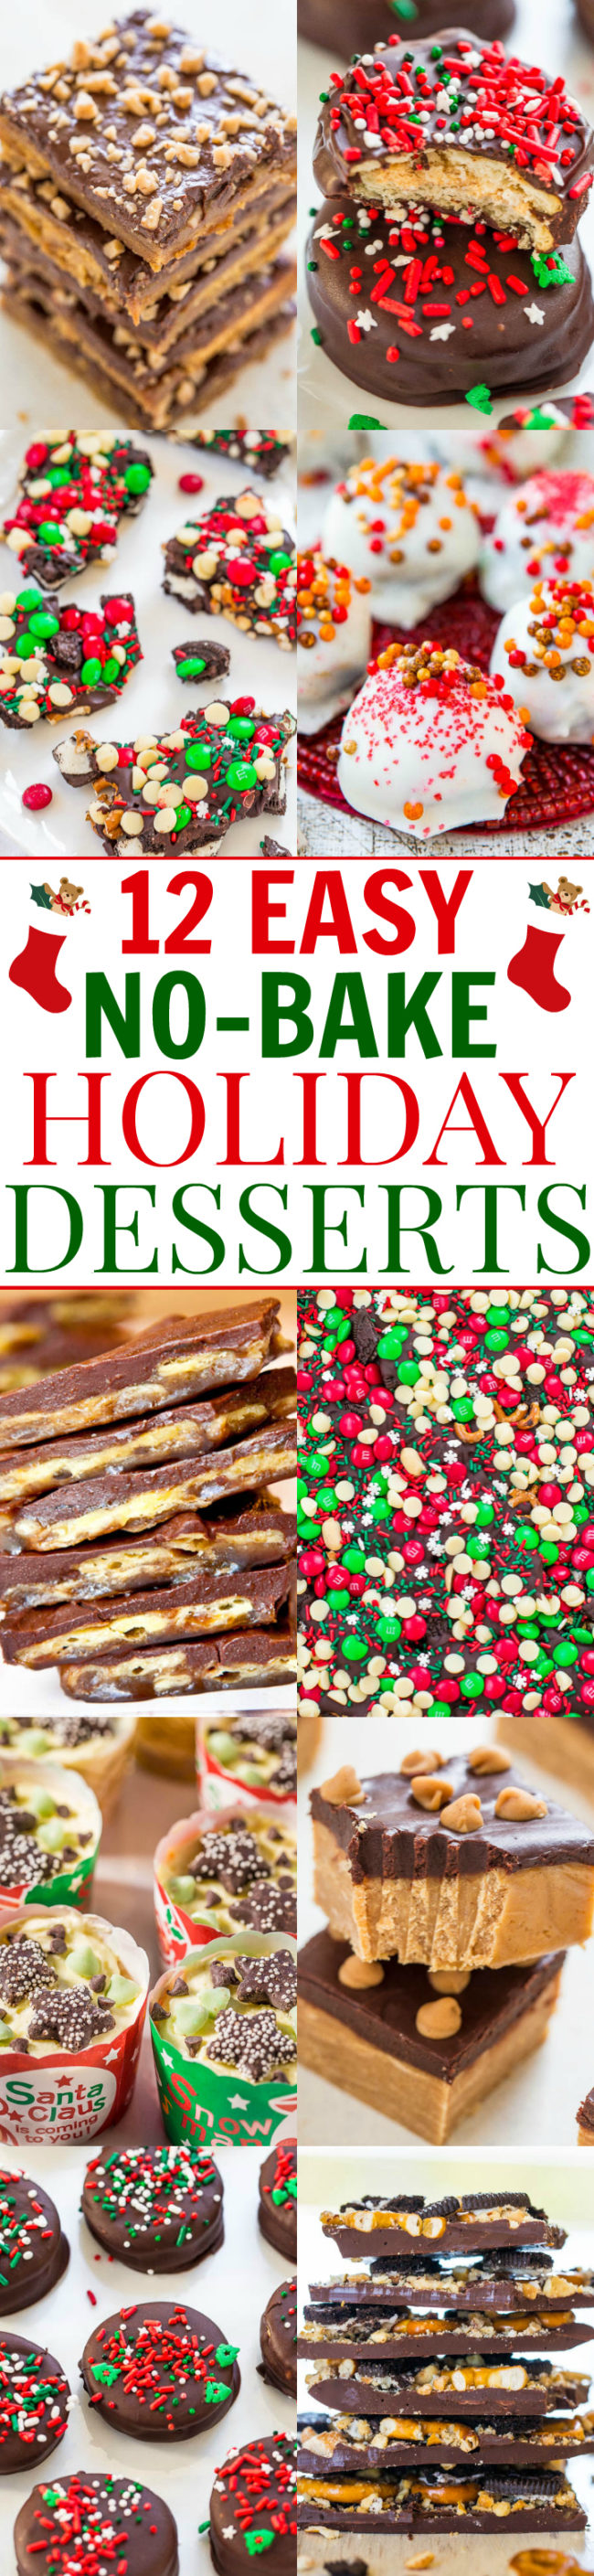 Easy No-Bake Holiday Desserts pic collage